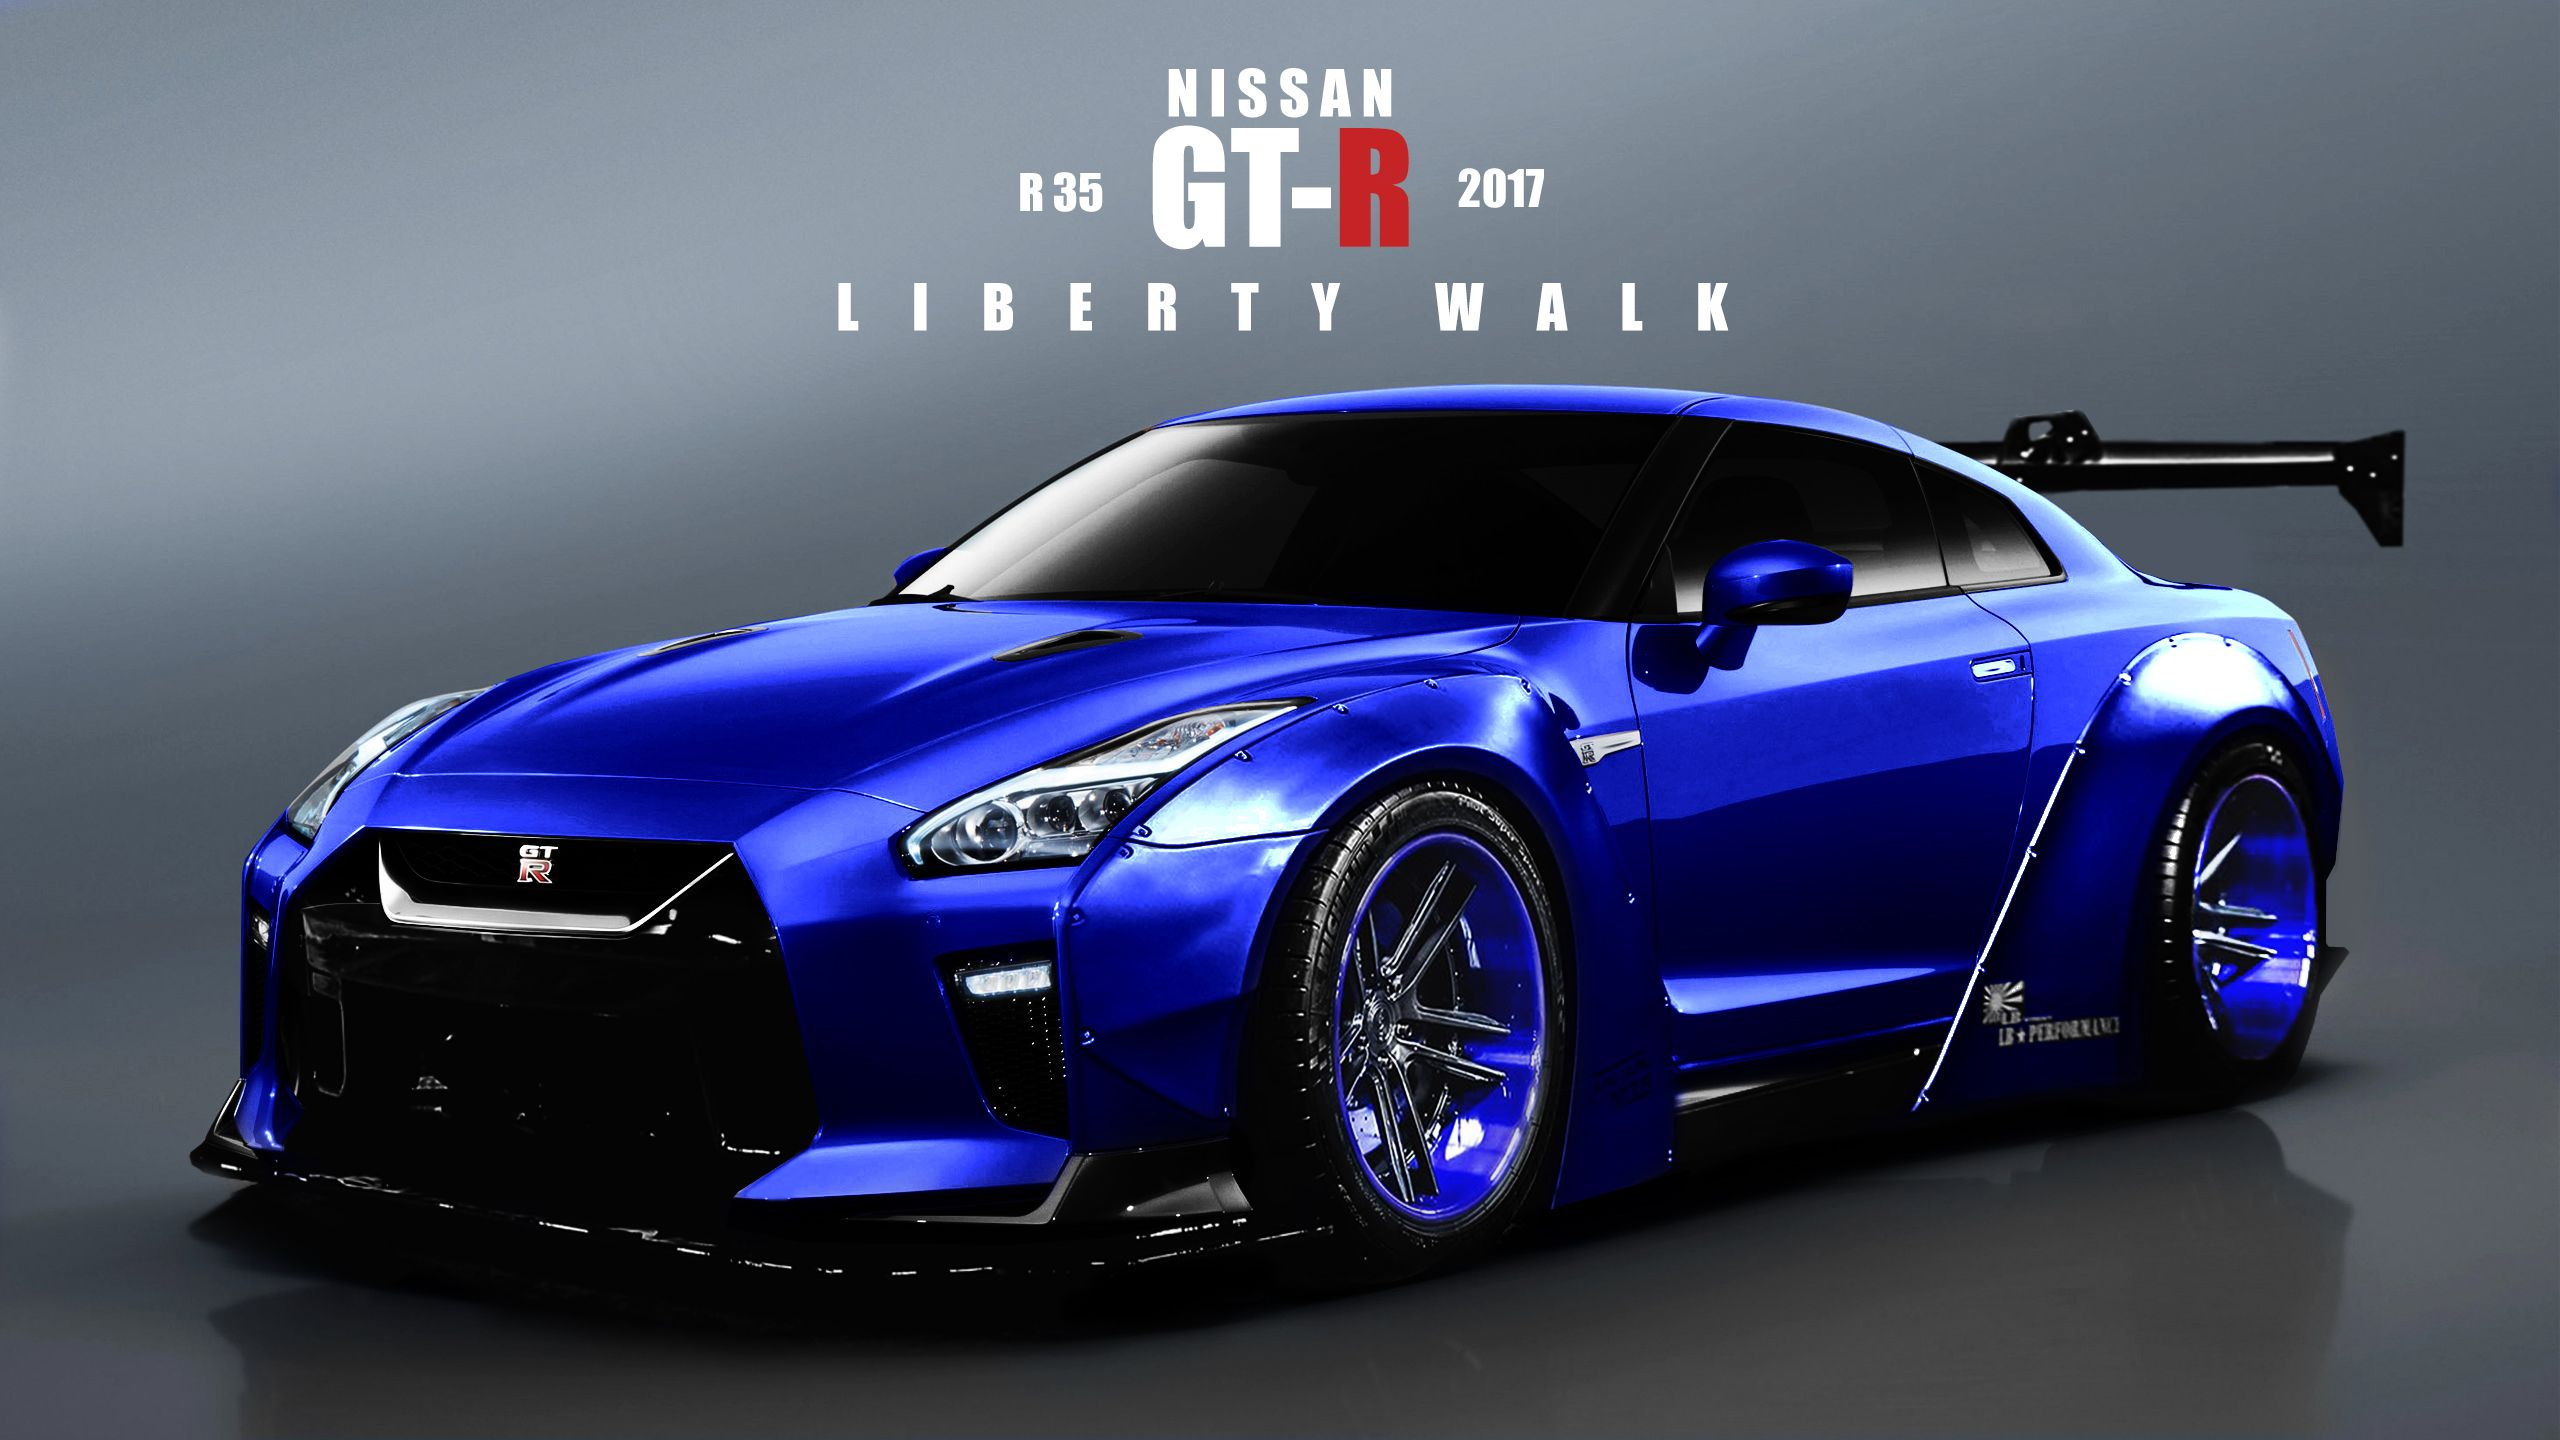 nissan gt r r35 2017 liberty walk by a4 a4 cars pinterest a4 liberty walk and nissan gt. Black Bedroom Furniture Sets. Home Design Ideas